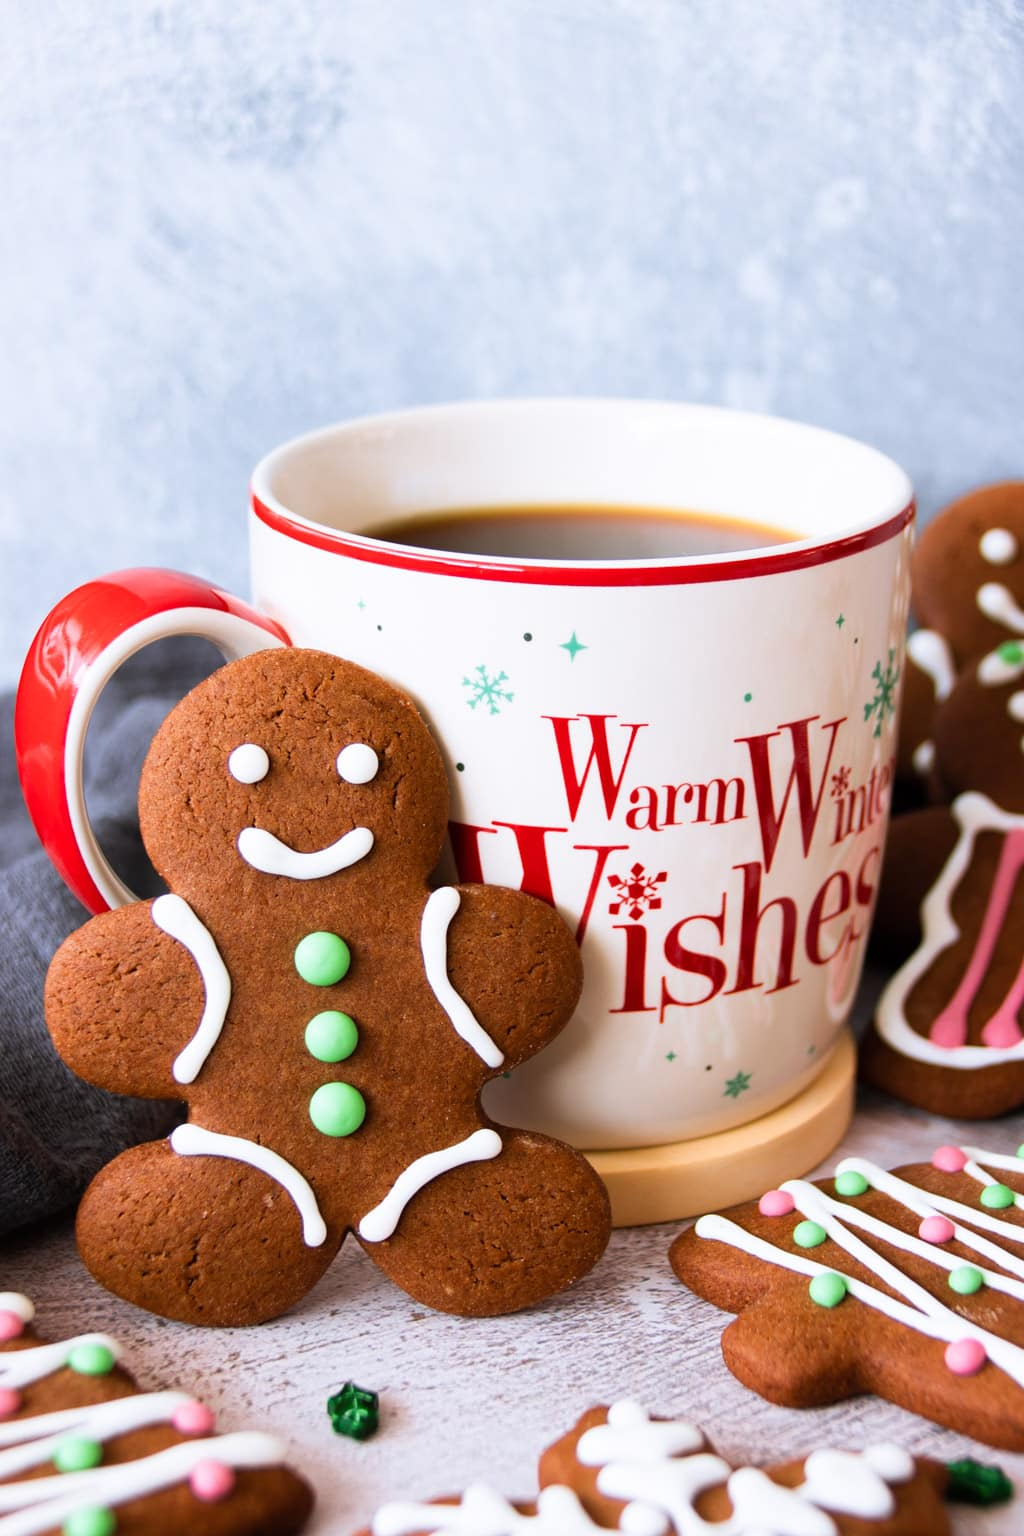 A gingerbread man cookie with a cup of hot coffee